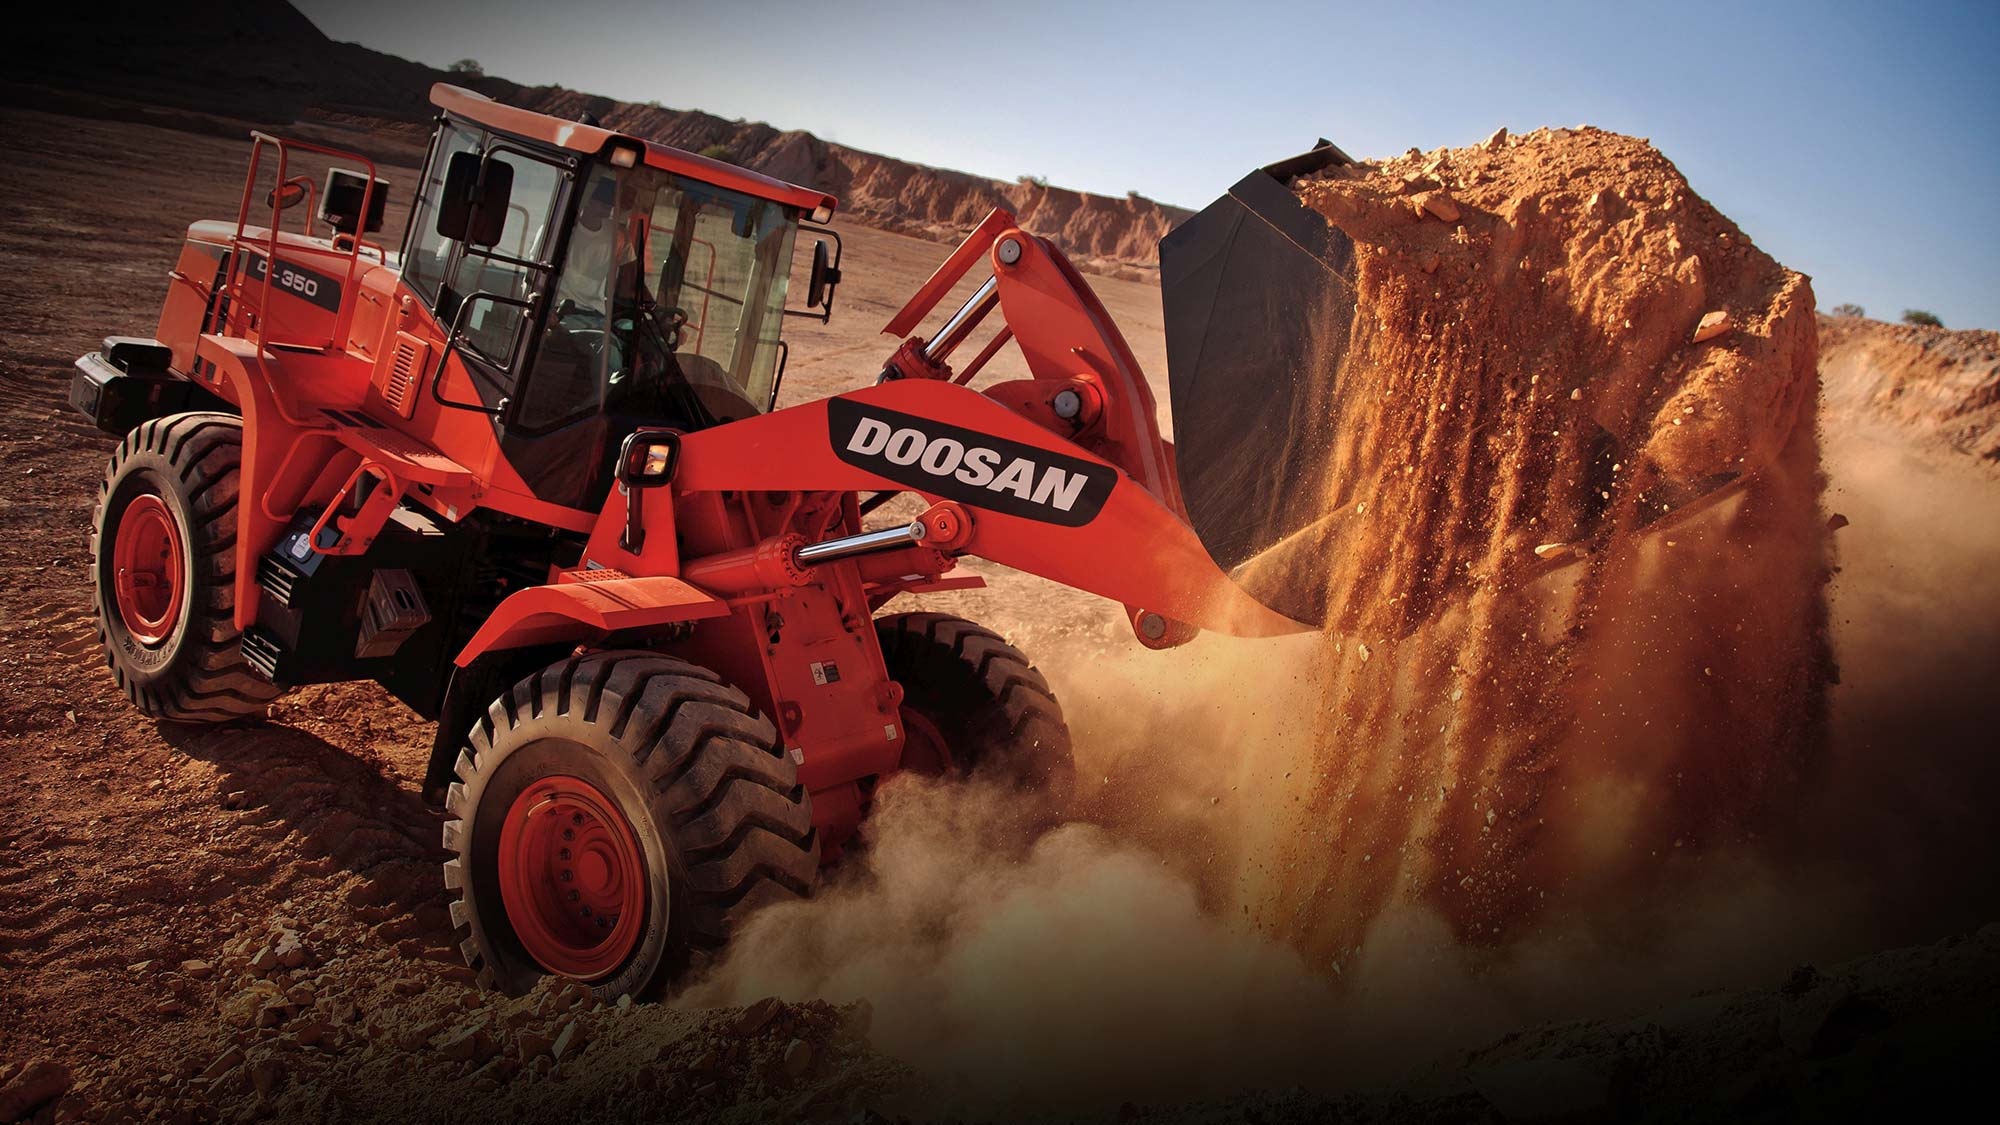 Suppliers of Doosan and Mustang Construction Equipment